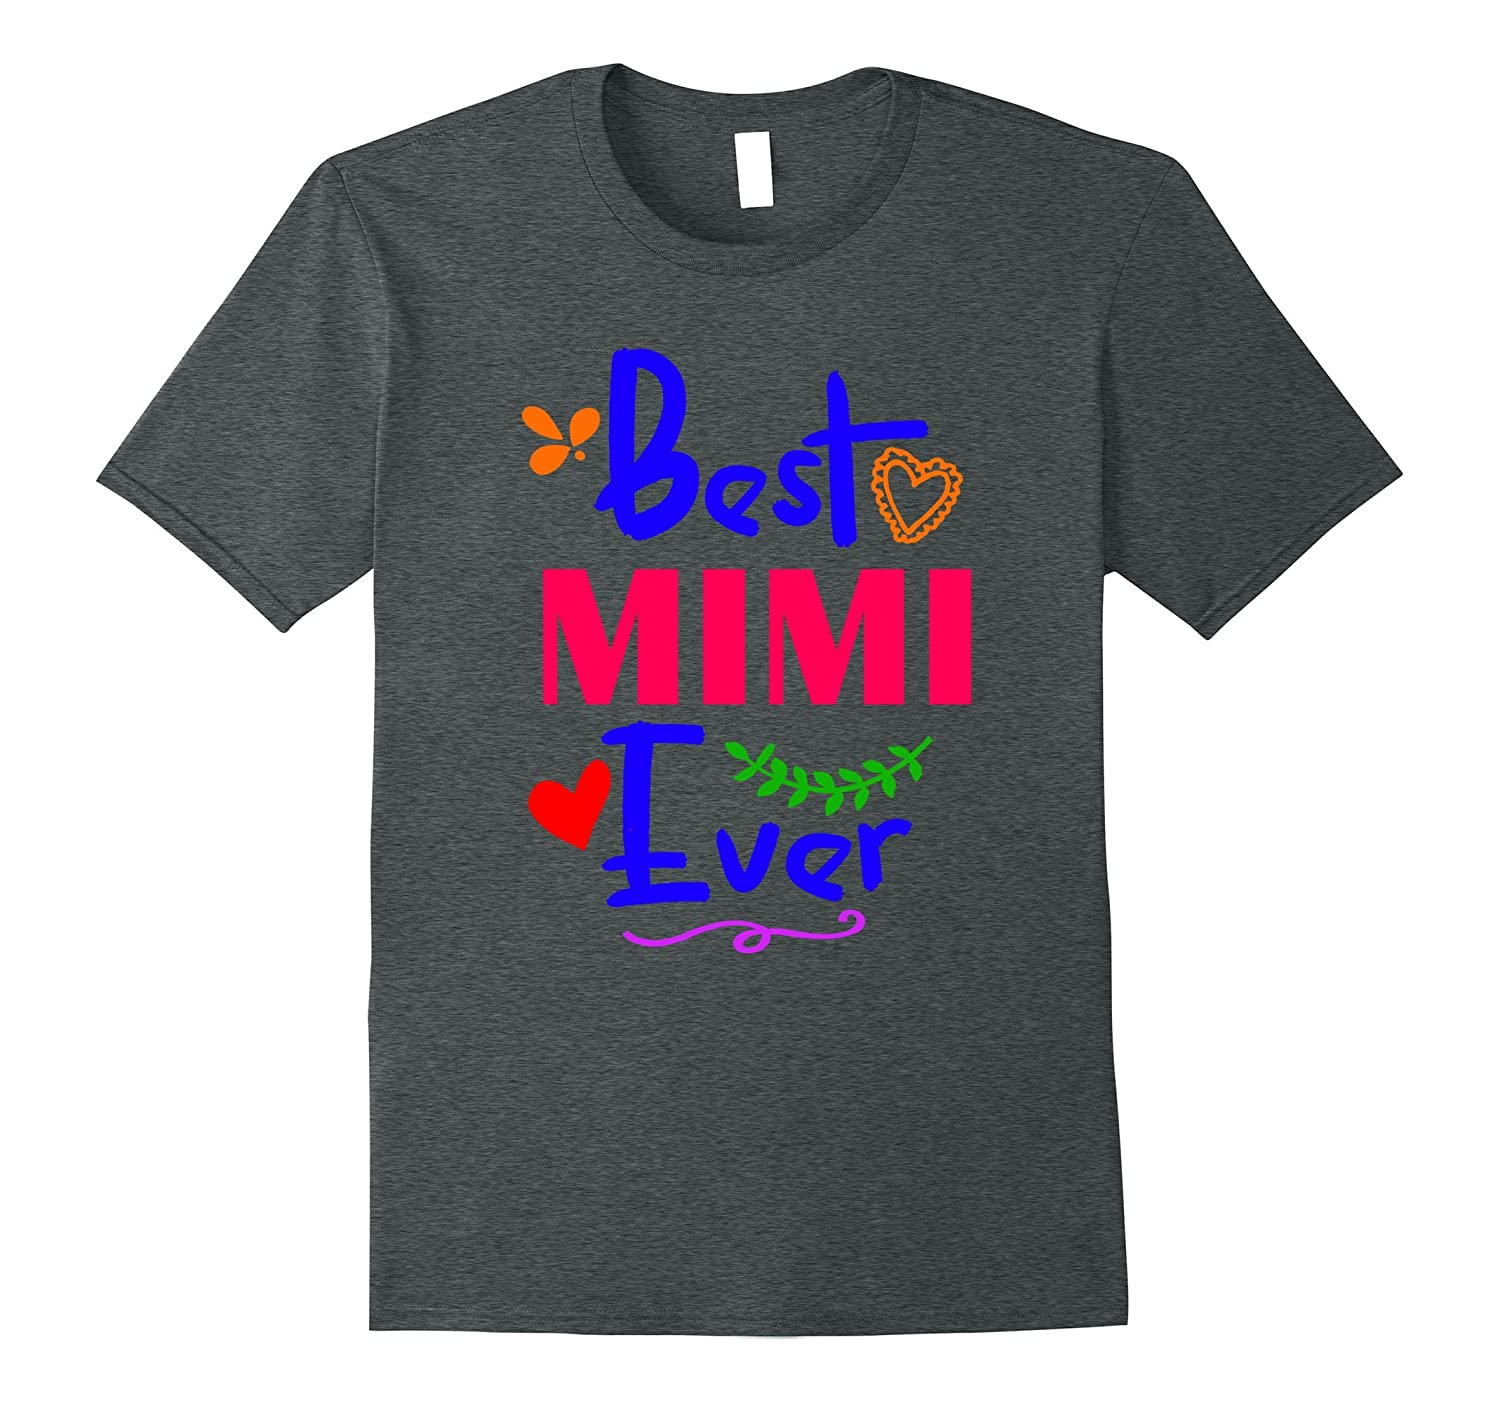 Best Mimi Ever Mothers Day Christmas Tshirt for Grandma-Vaci